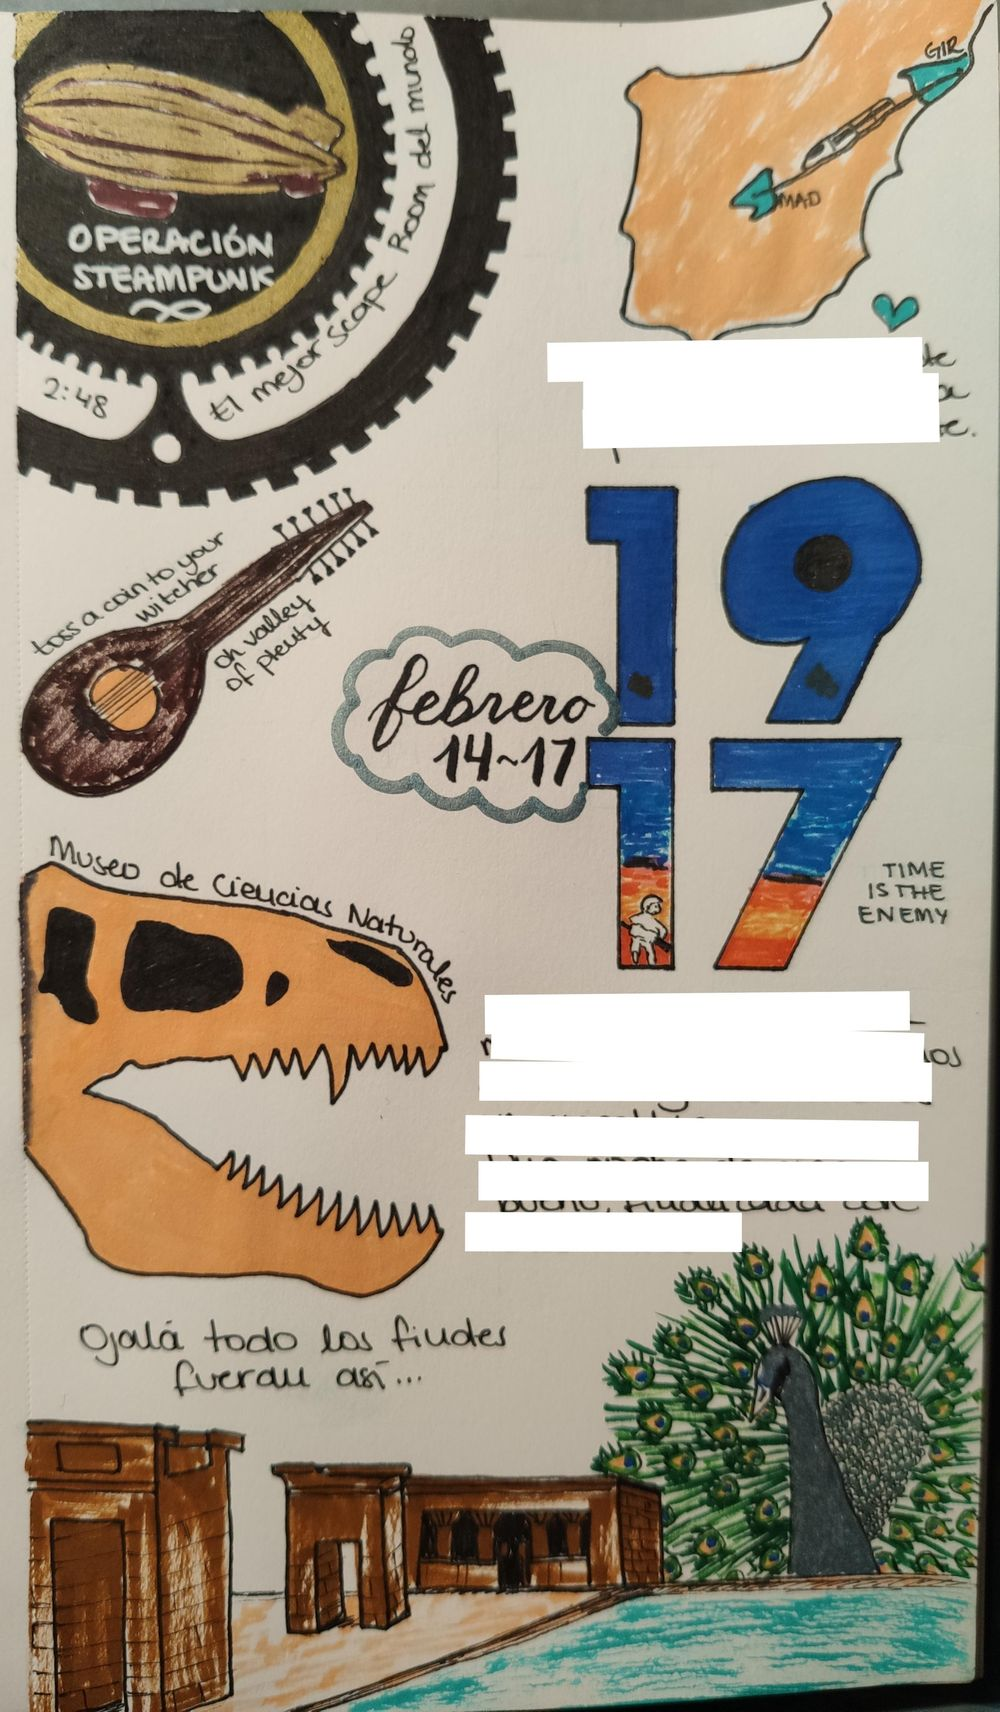 Illustrated journal of my weekend - image 1 - student project